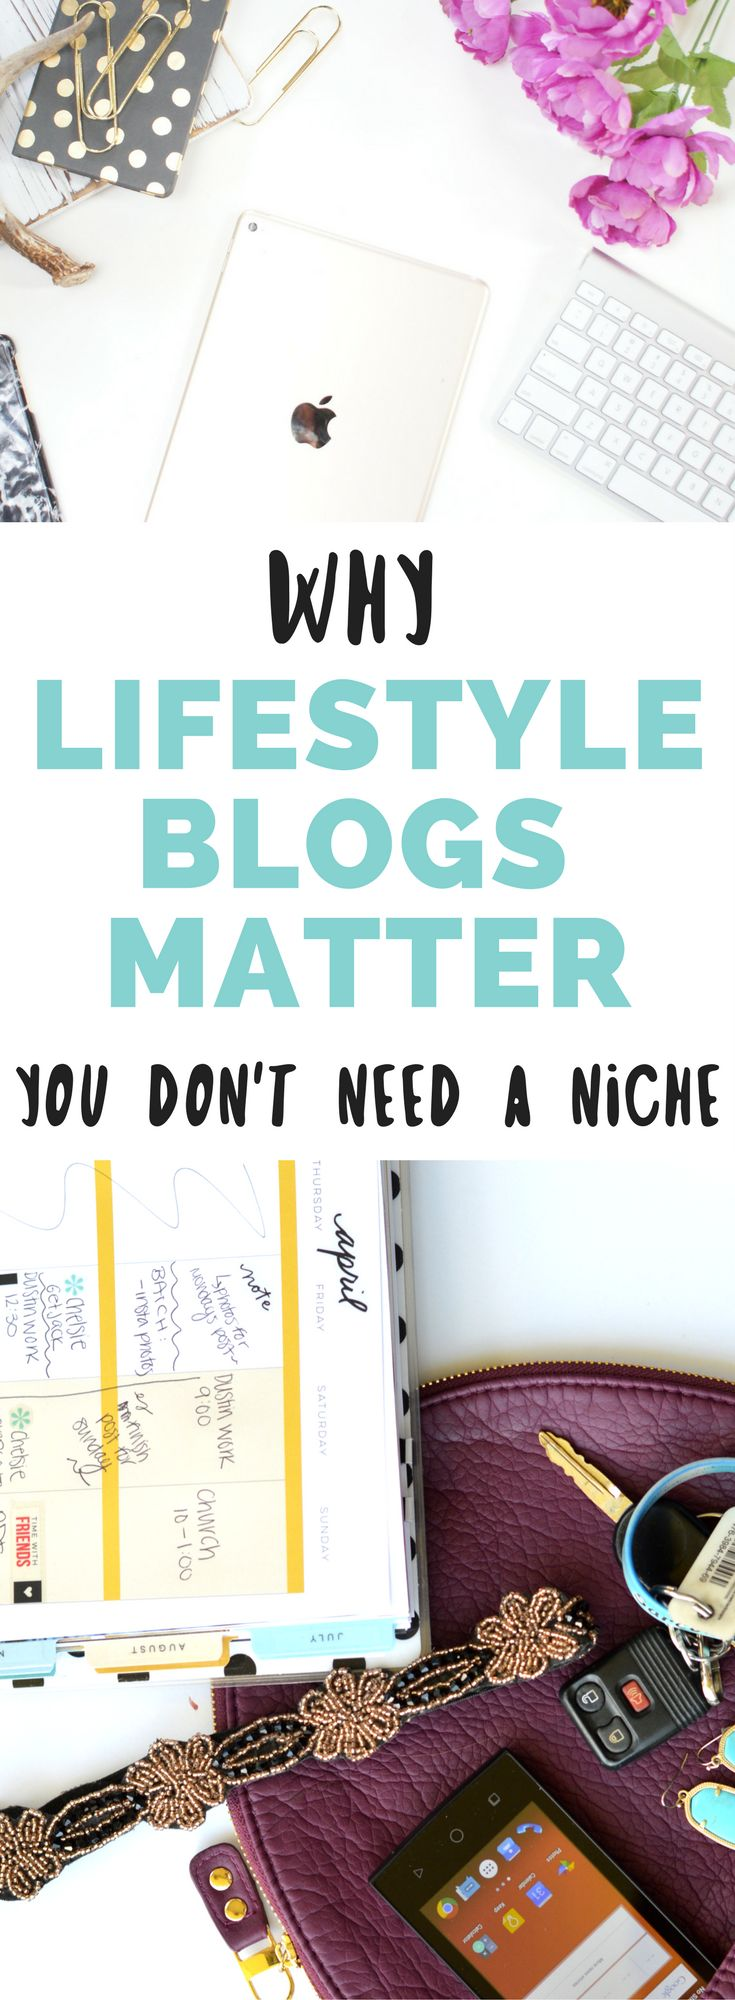 Do you need to have a niche to be a successful blogger? No! Here's why lifestyle blogs matter and why you should start a lifestyle blog // Hey There, Chelsie